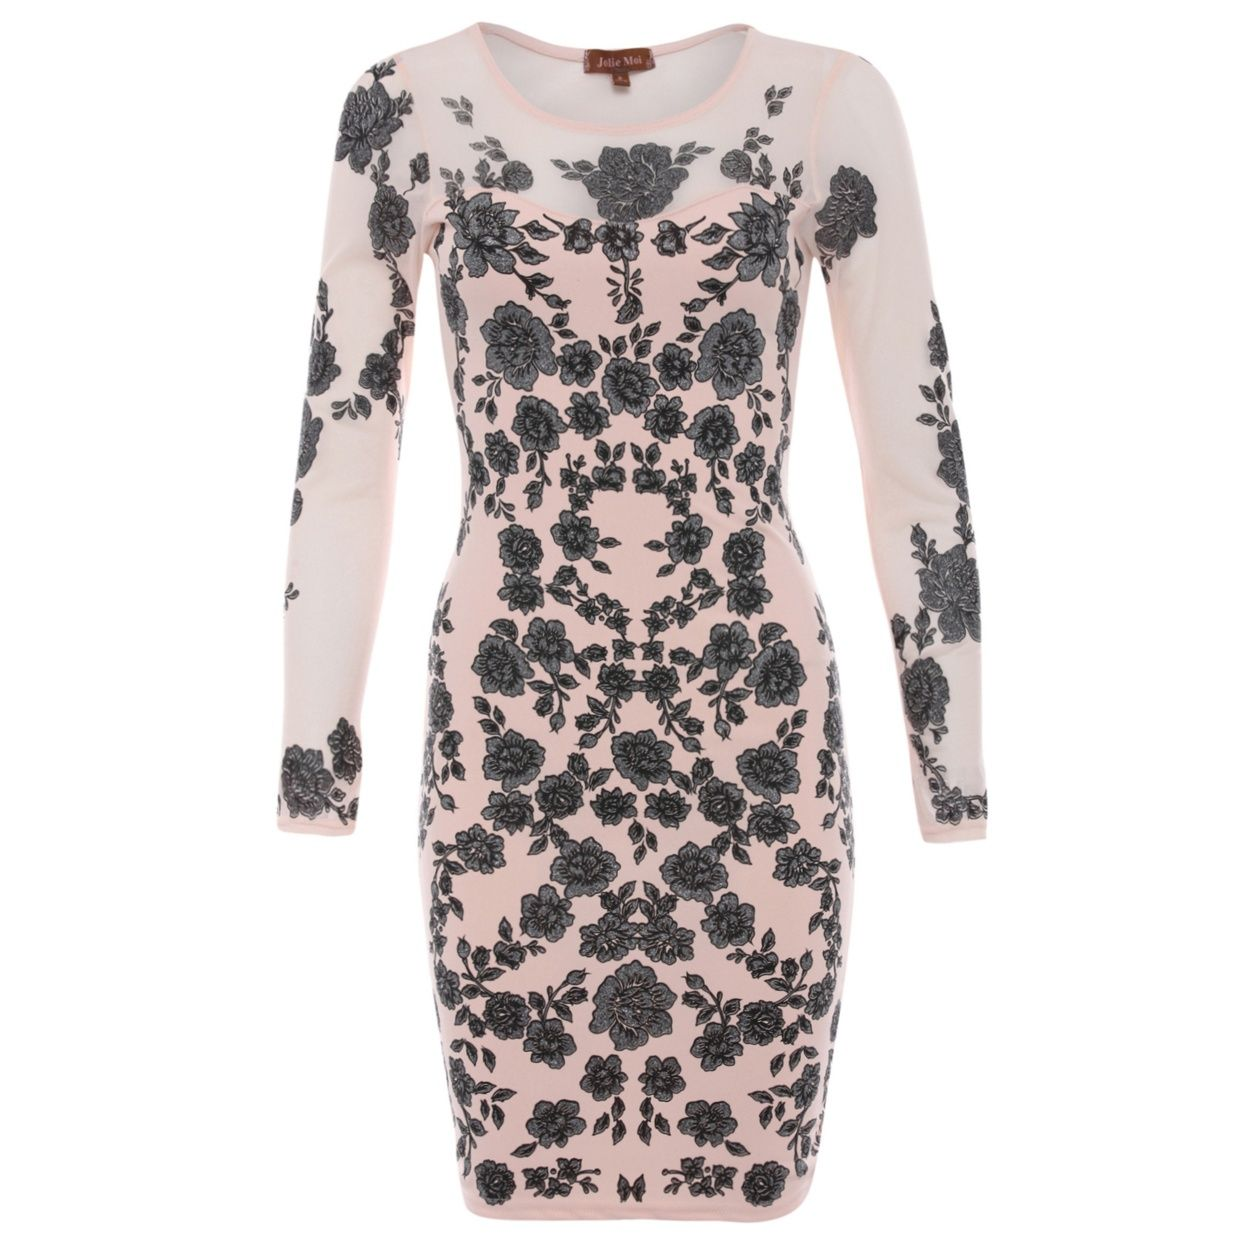 Jolie moi taupe floral mesh bodycon dress at debenhams